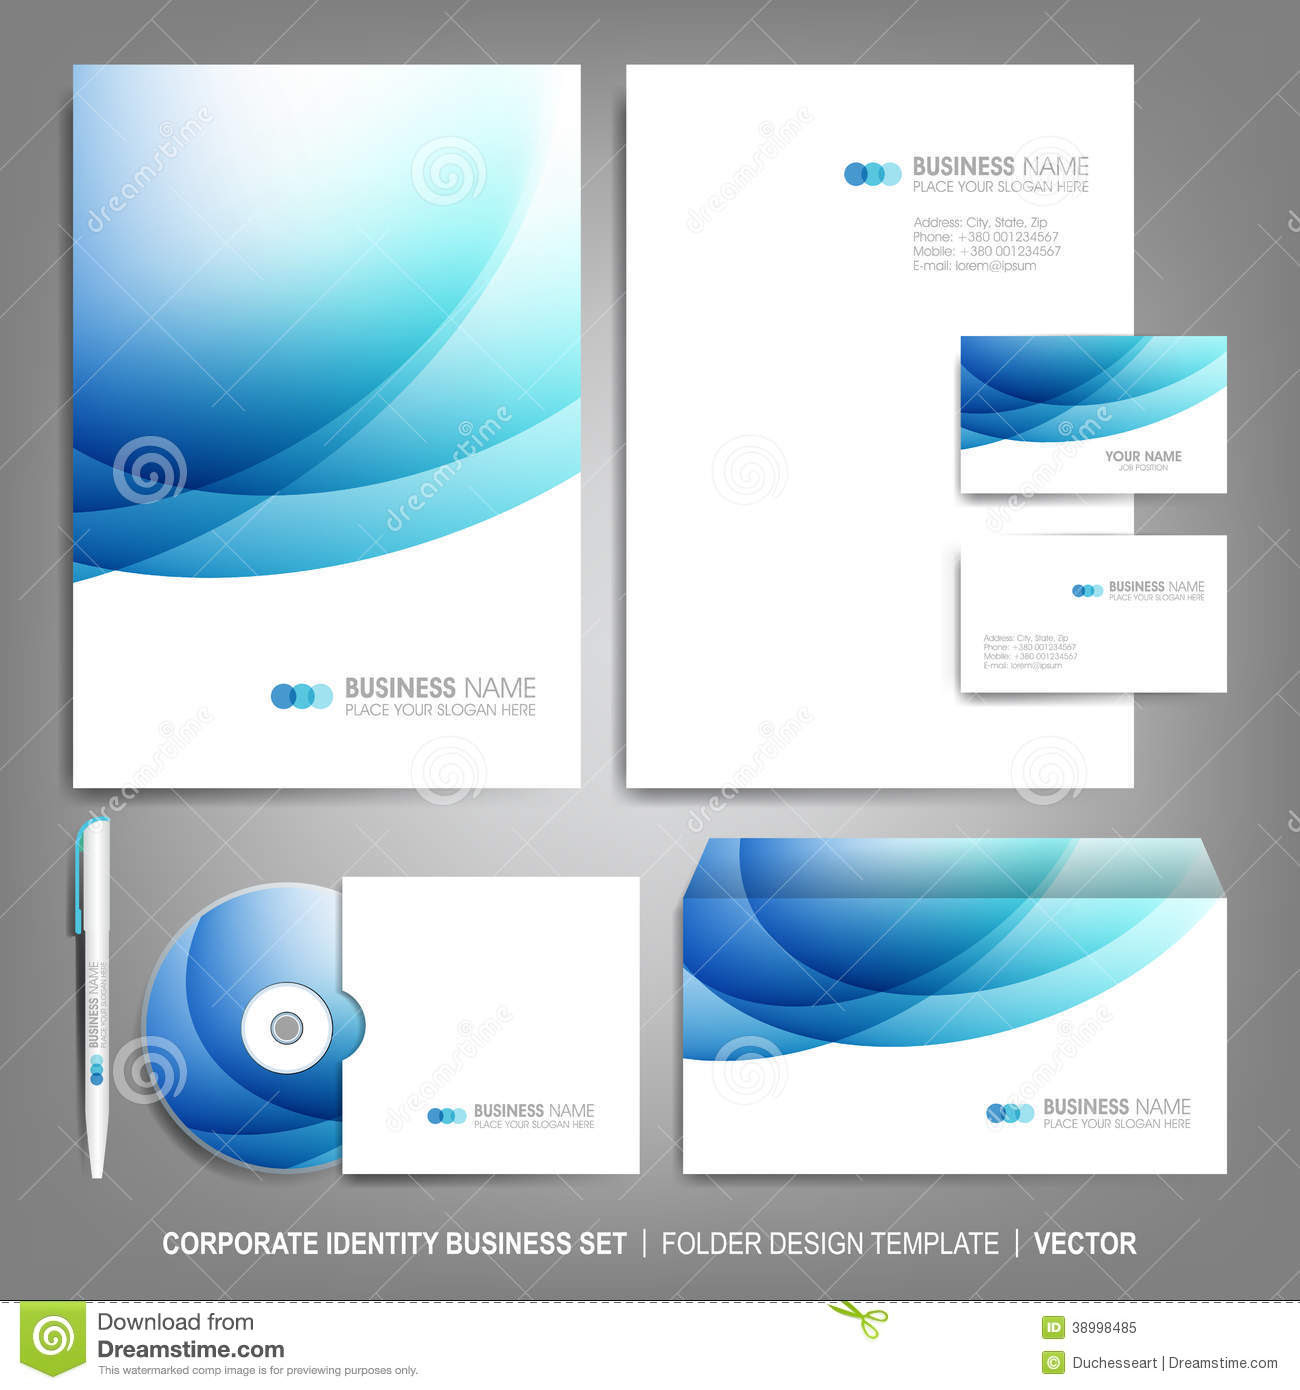 Corporate Identity Template For Business Artworks Stock ...